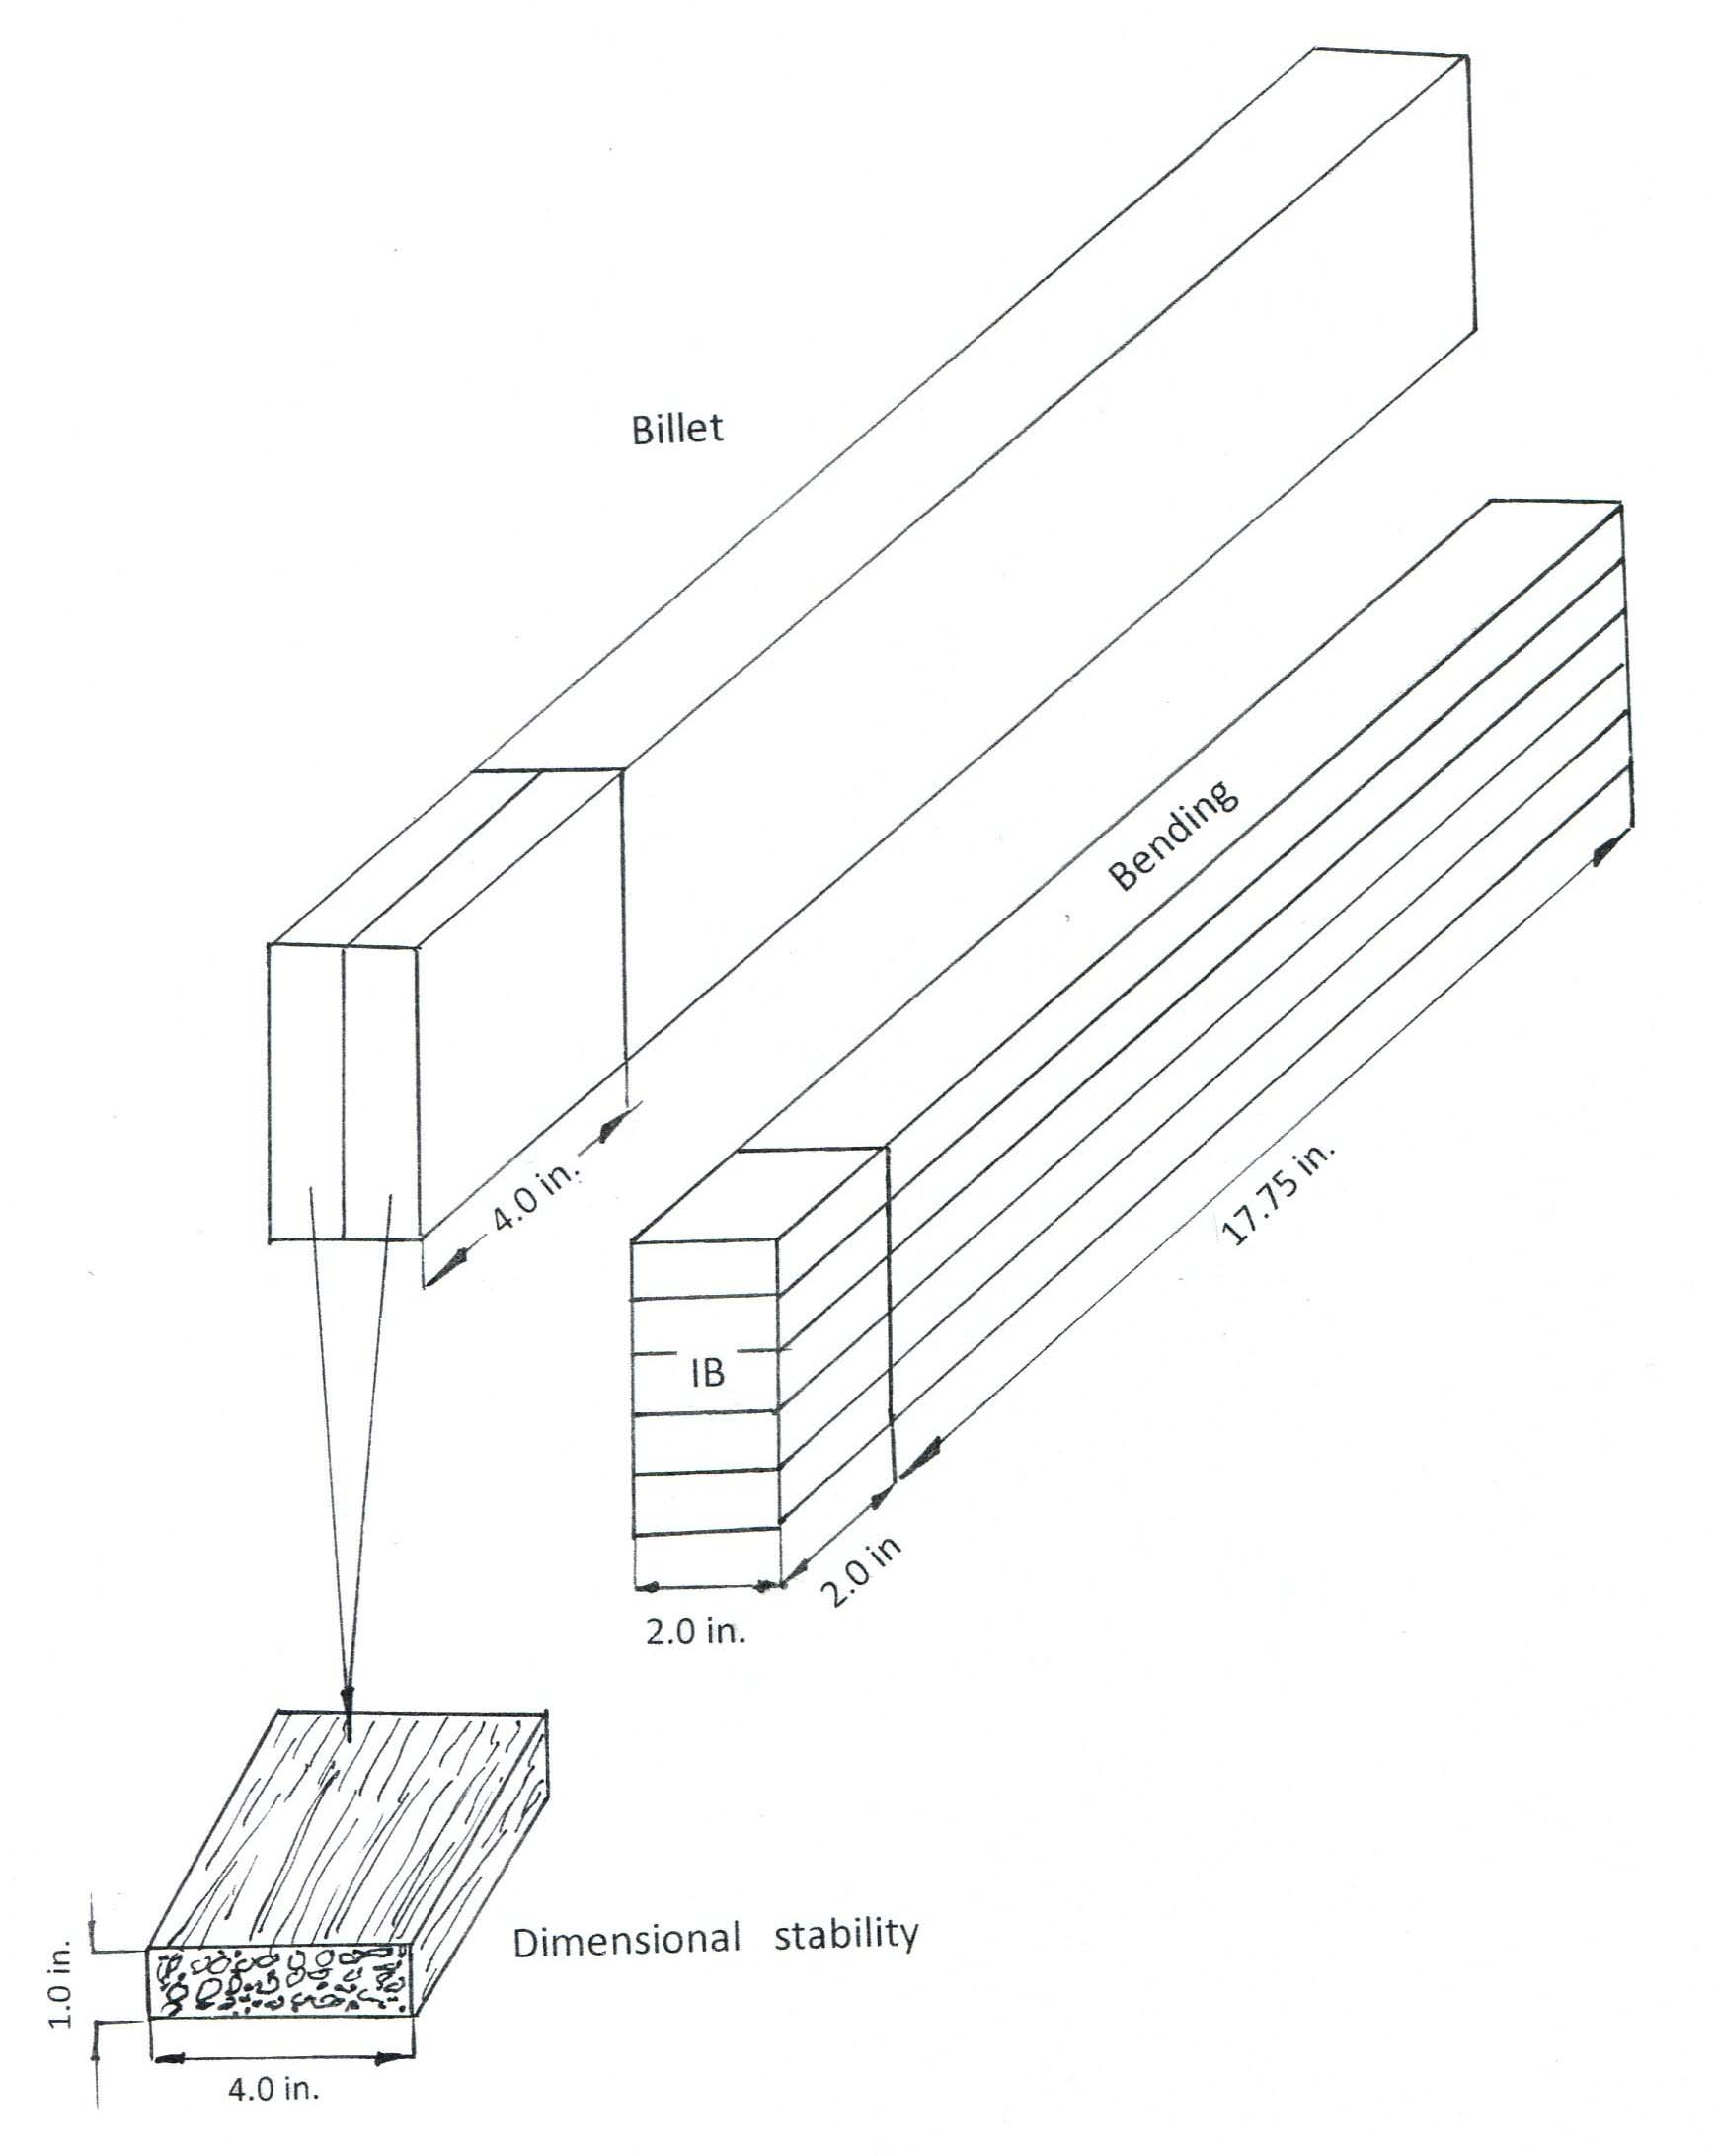 Cutting schematic of the lumber samples.